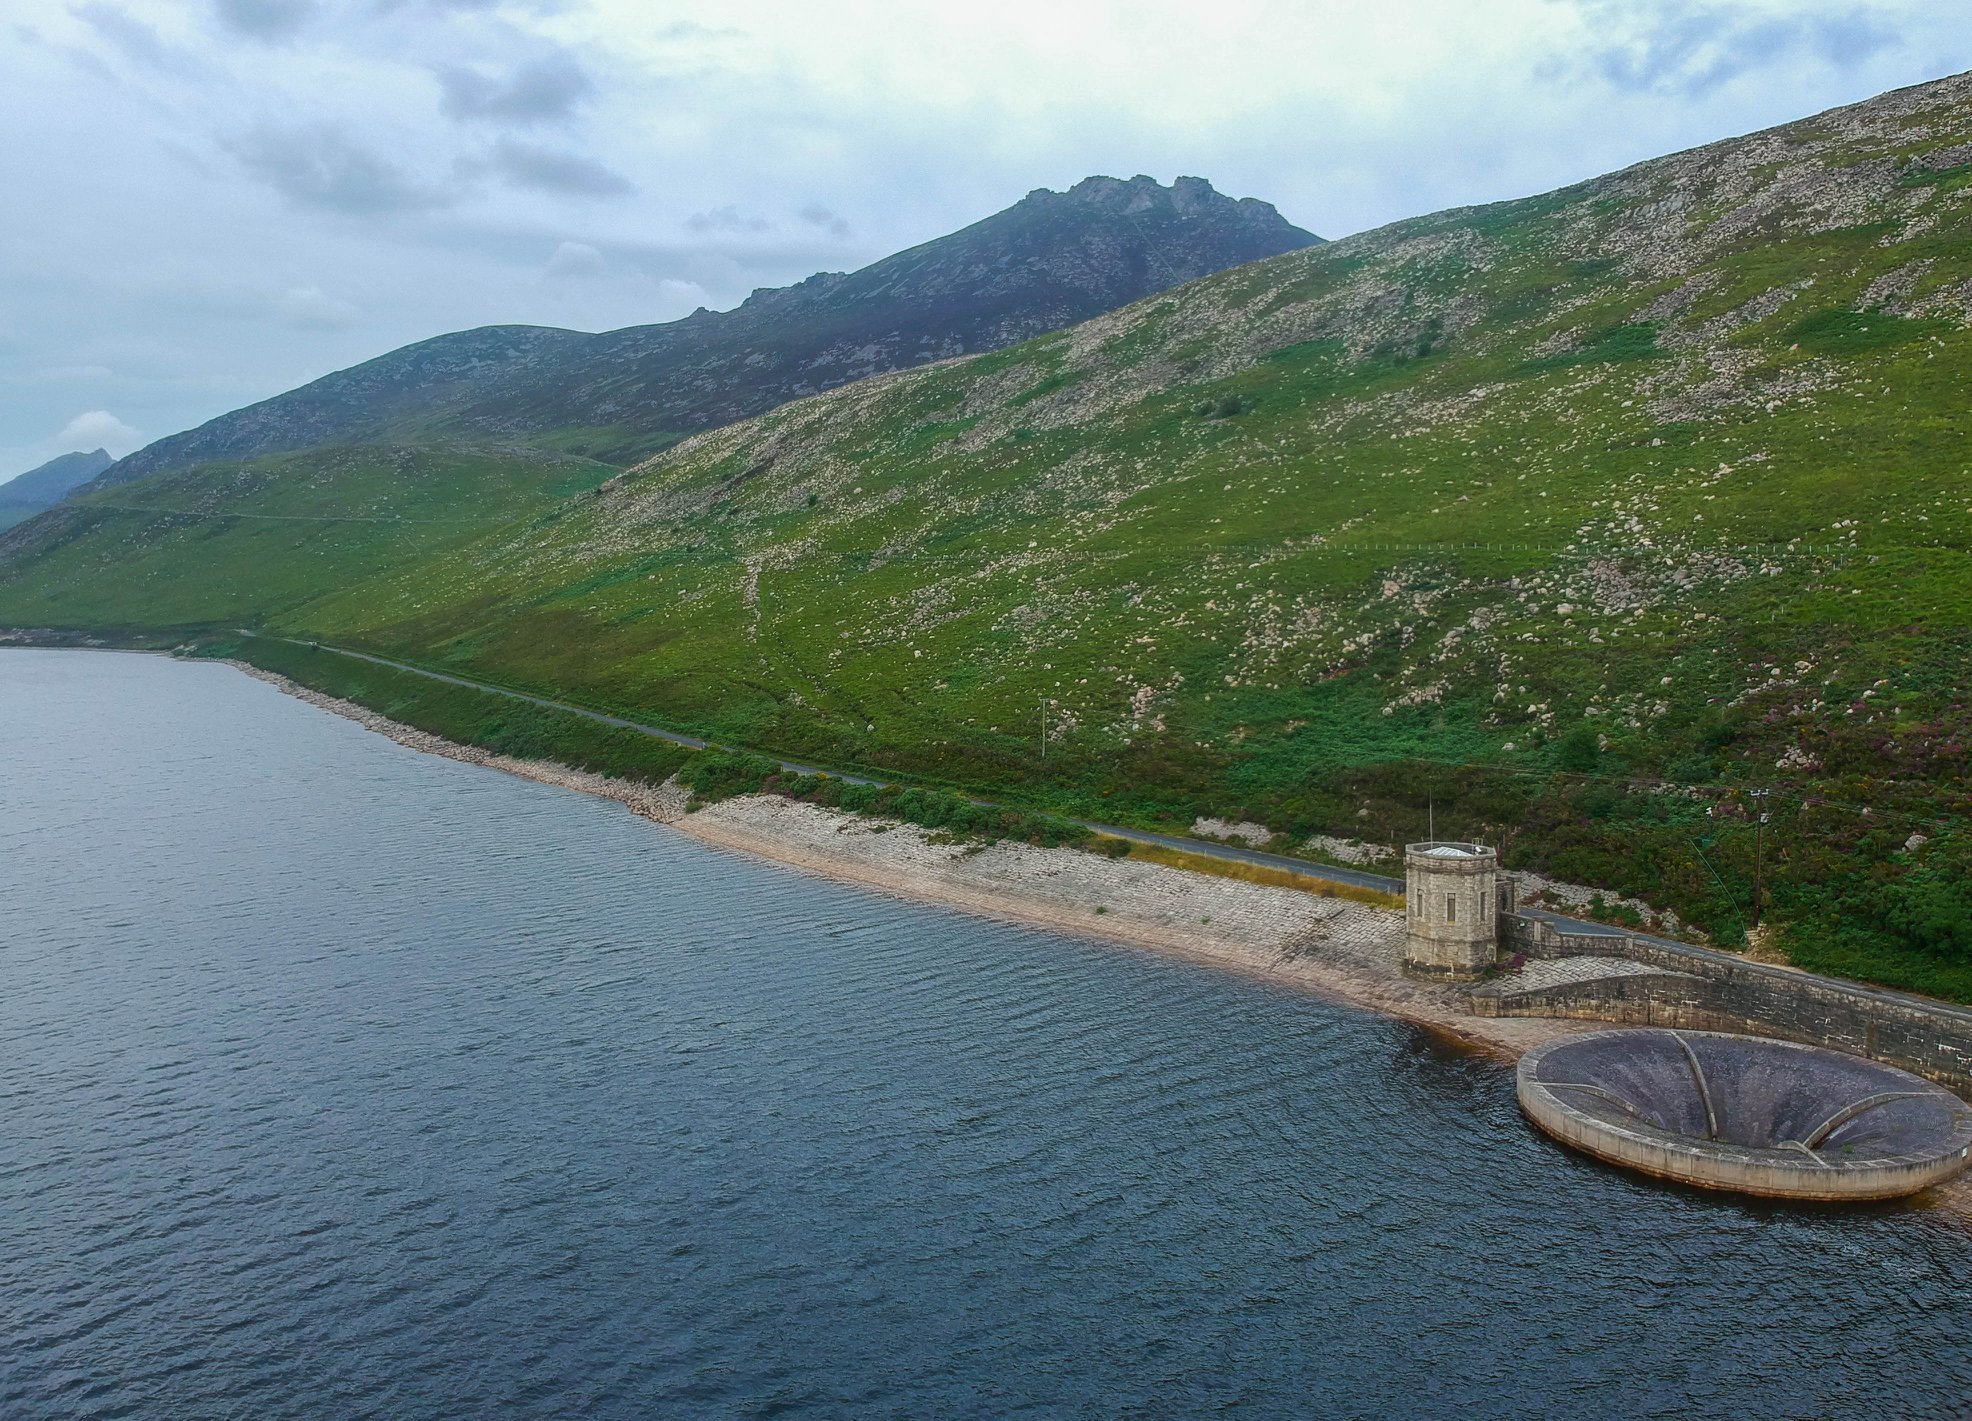 Drone Images of Silent Valley in Mourne Mountains